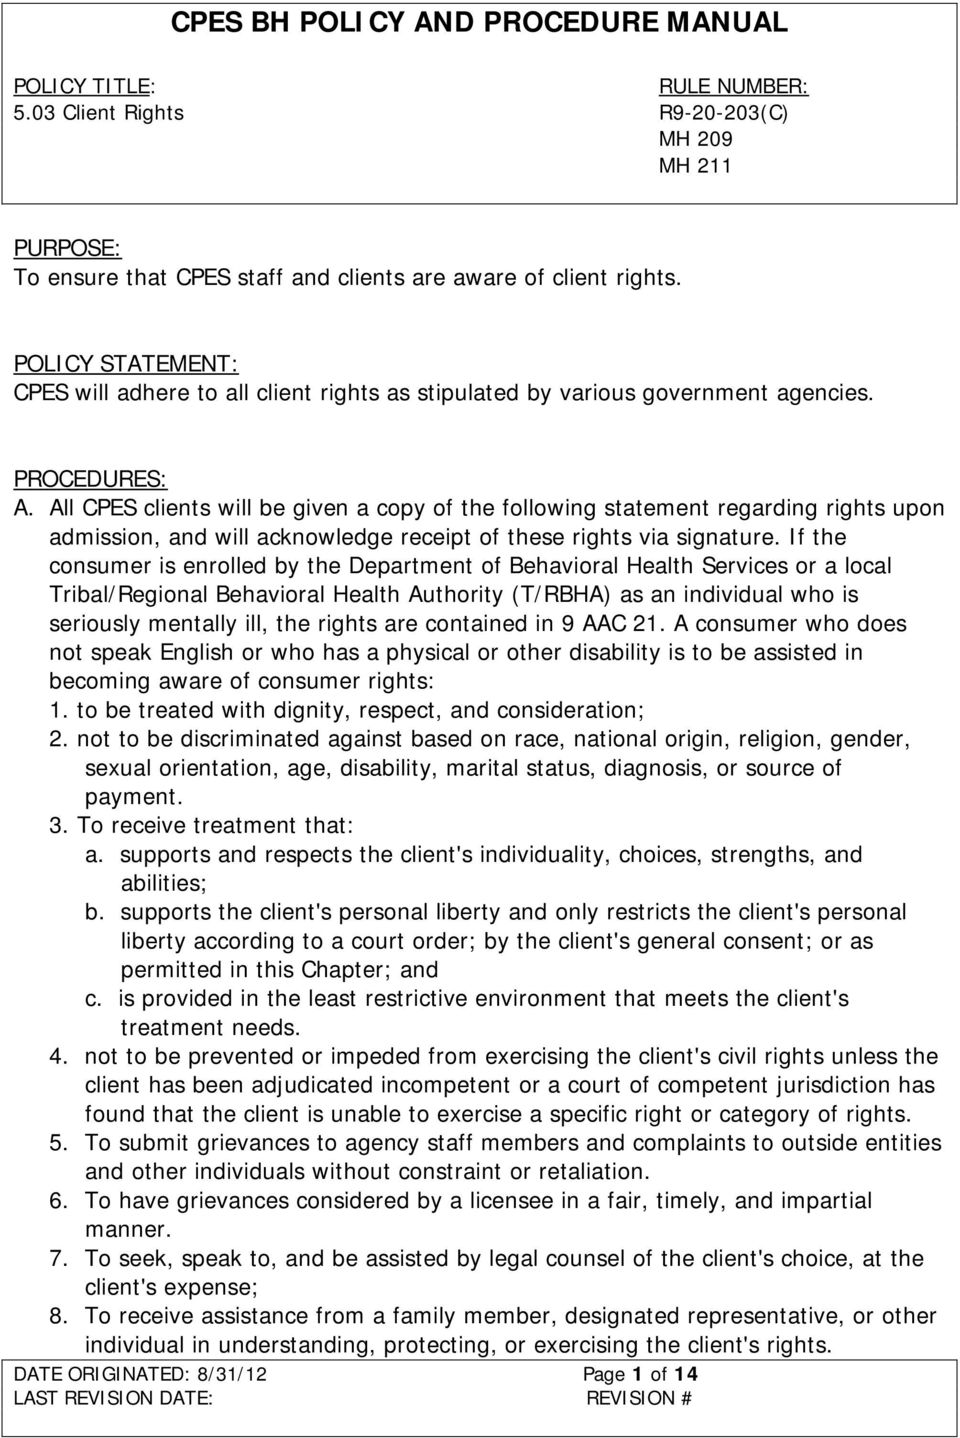 All CPES clients will be given a copy of the following statement regarding rights upon admission, and will acknowledge receipt of these rights via signature.